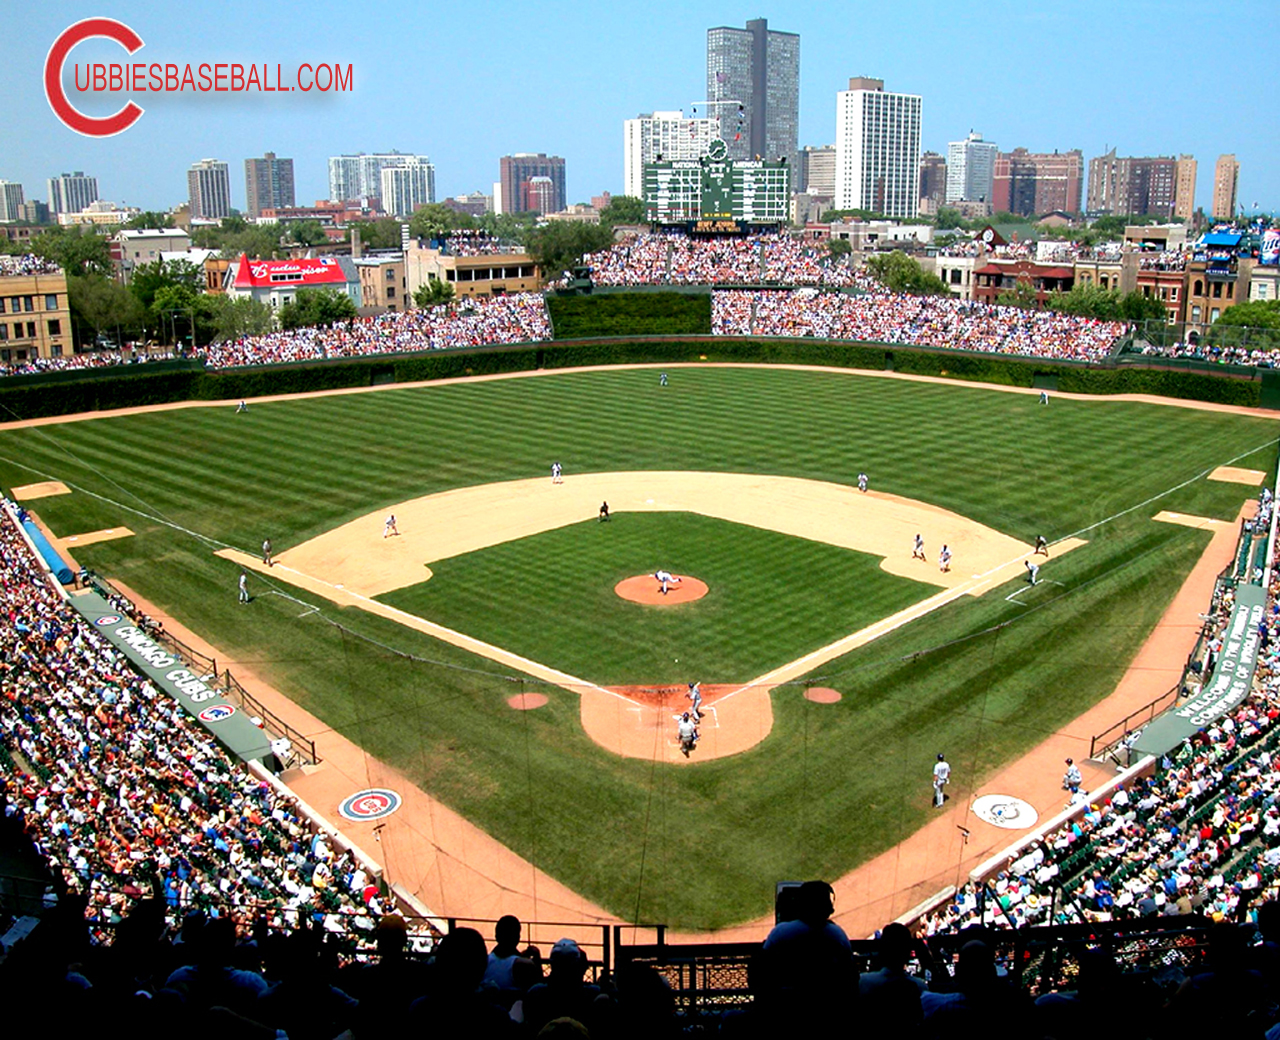 Baseball   Chicago Cubs Merchandise Apparel Tickets News and More 1280x1040